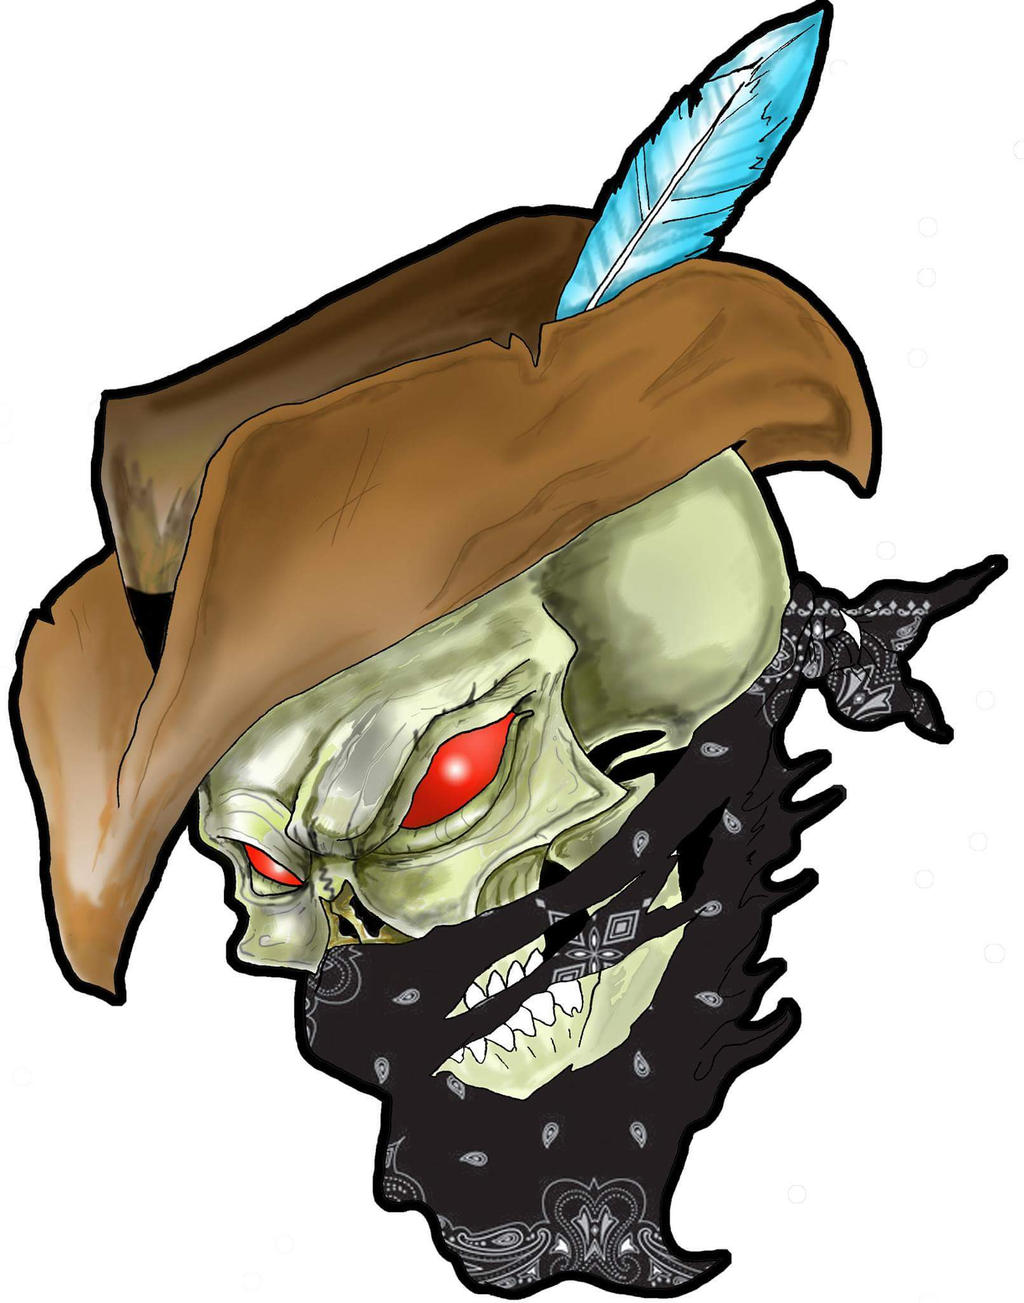 Outlaw Cowboy Skull by DrSnakeEater on DeviantArt Outlaw Cowboy Skull